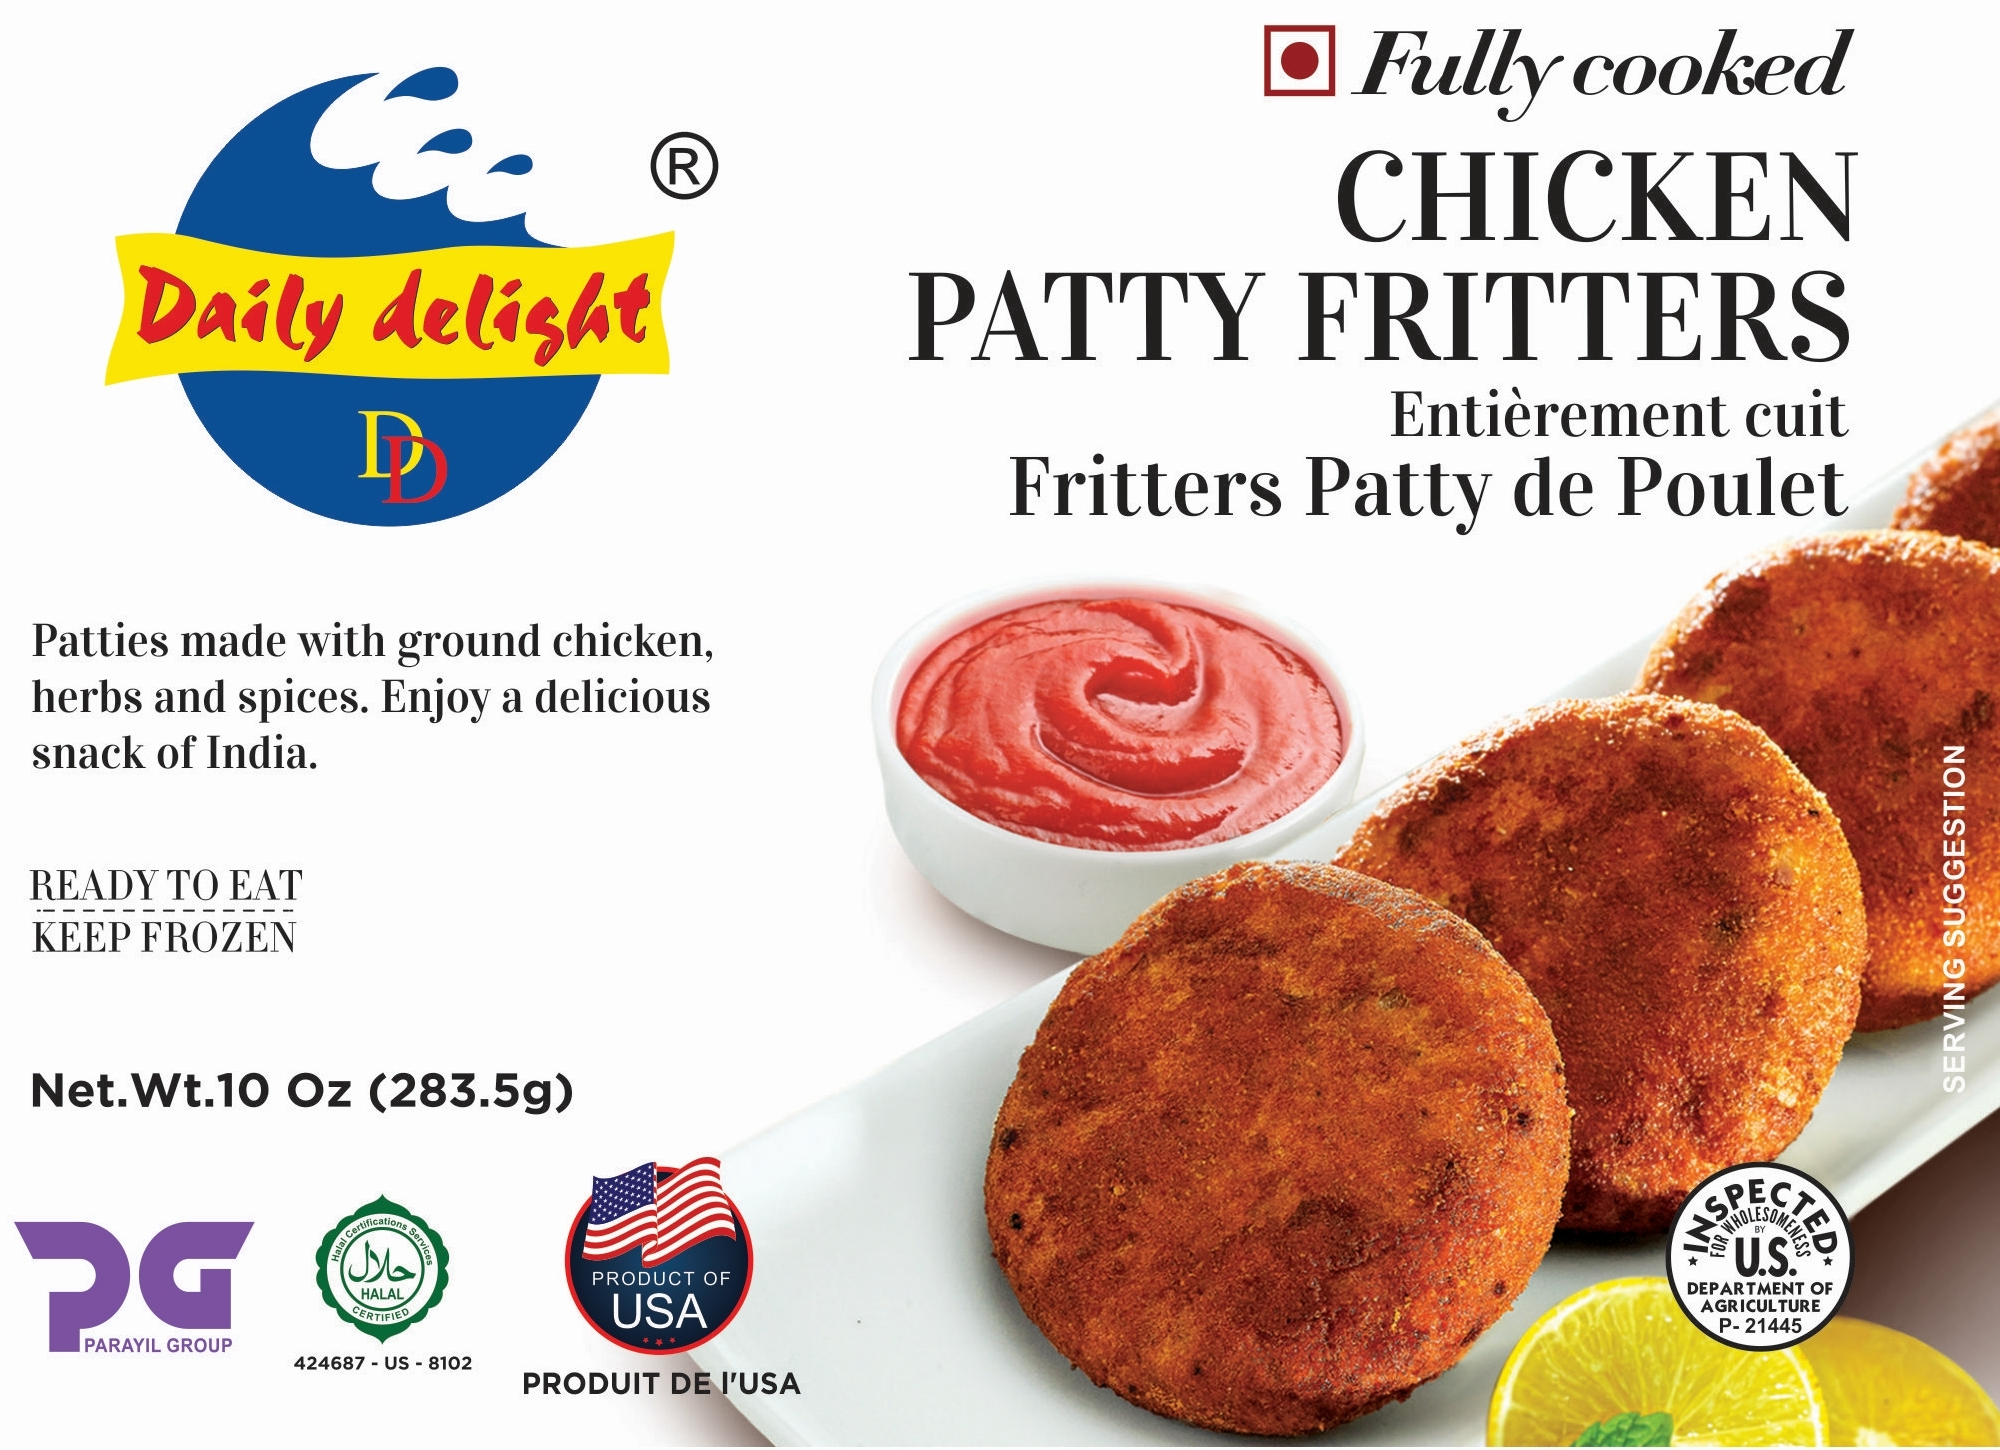 Daily Delight Chicken Patty Fritters